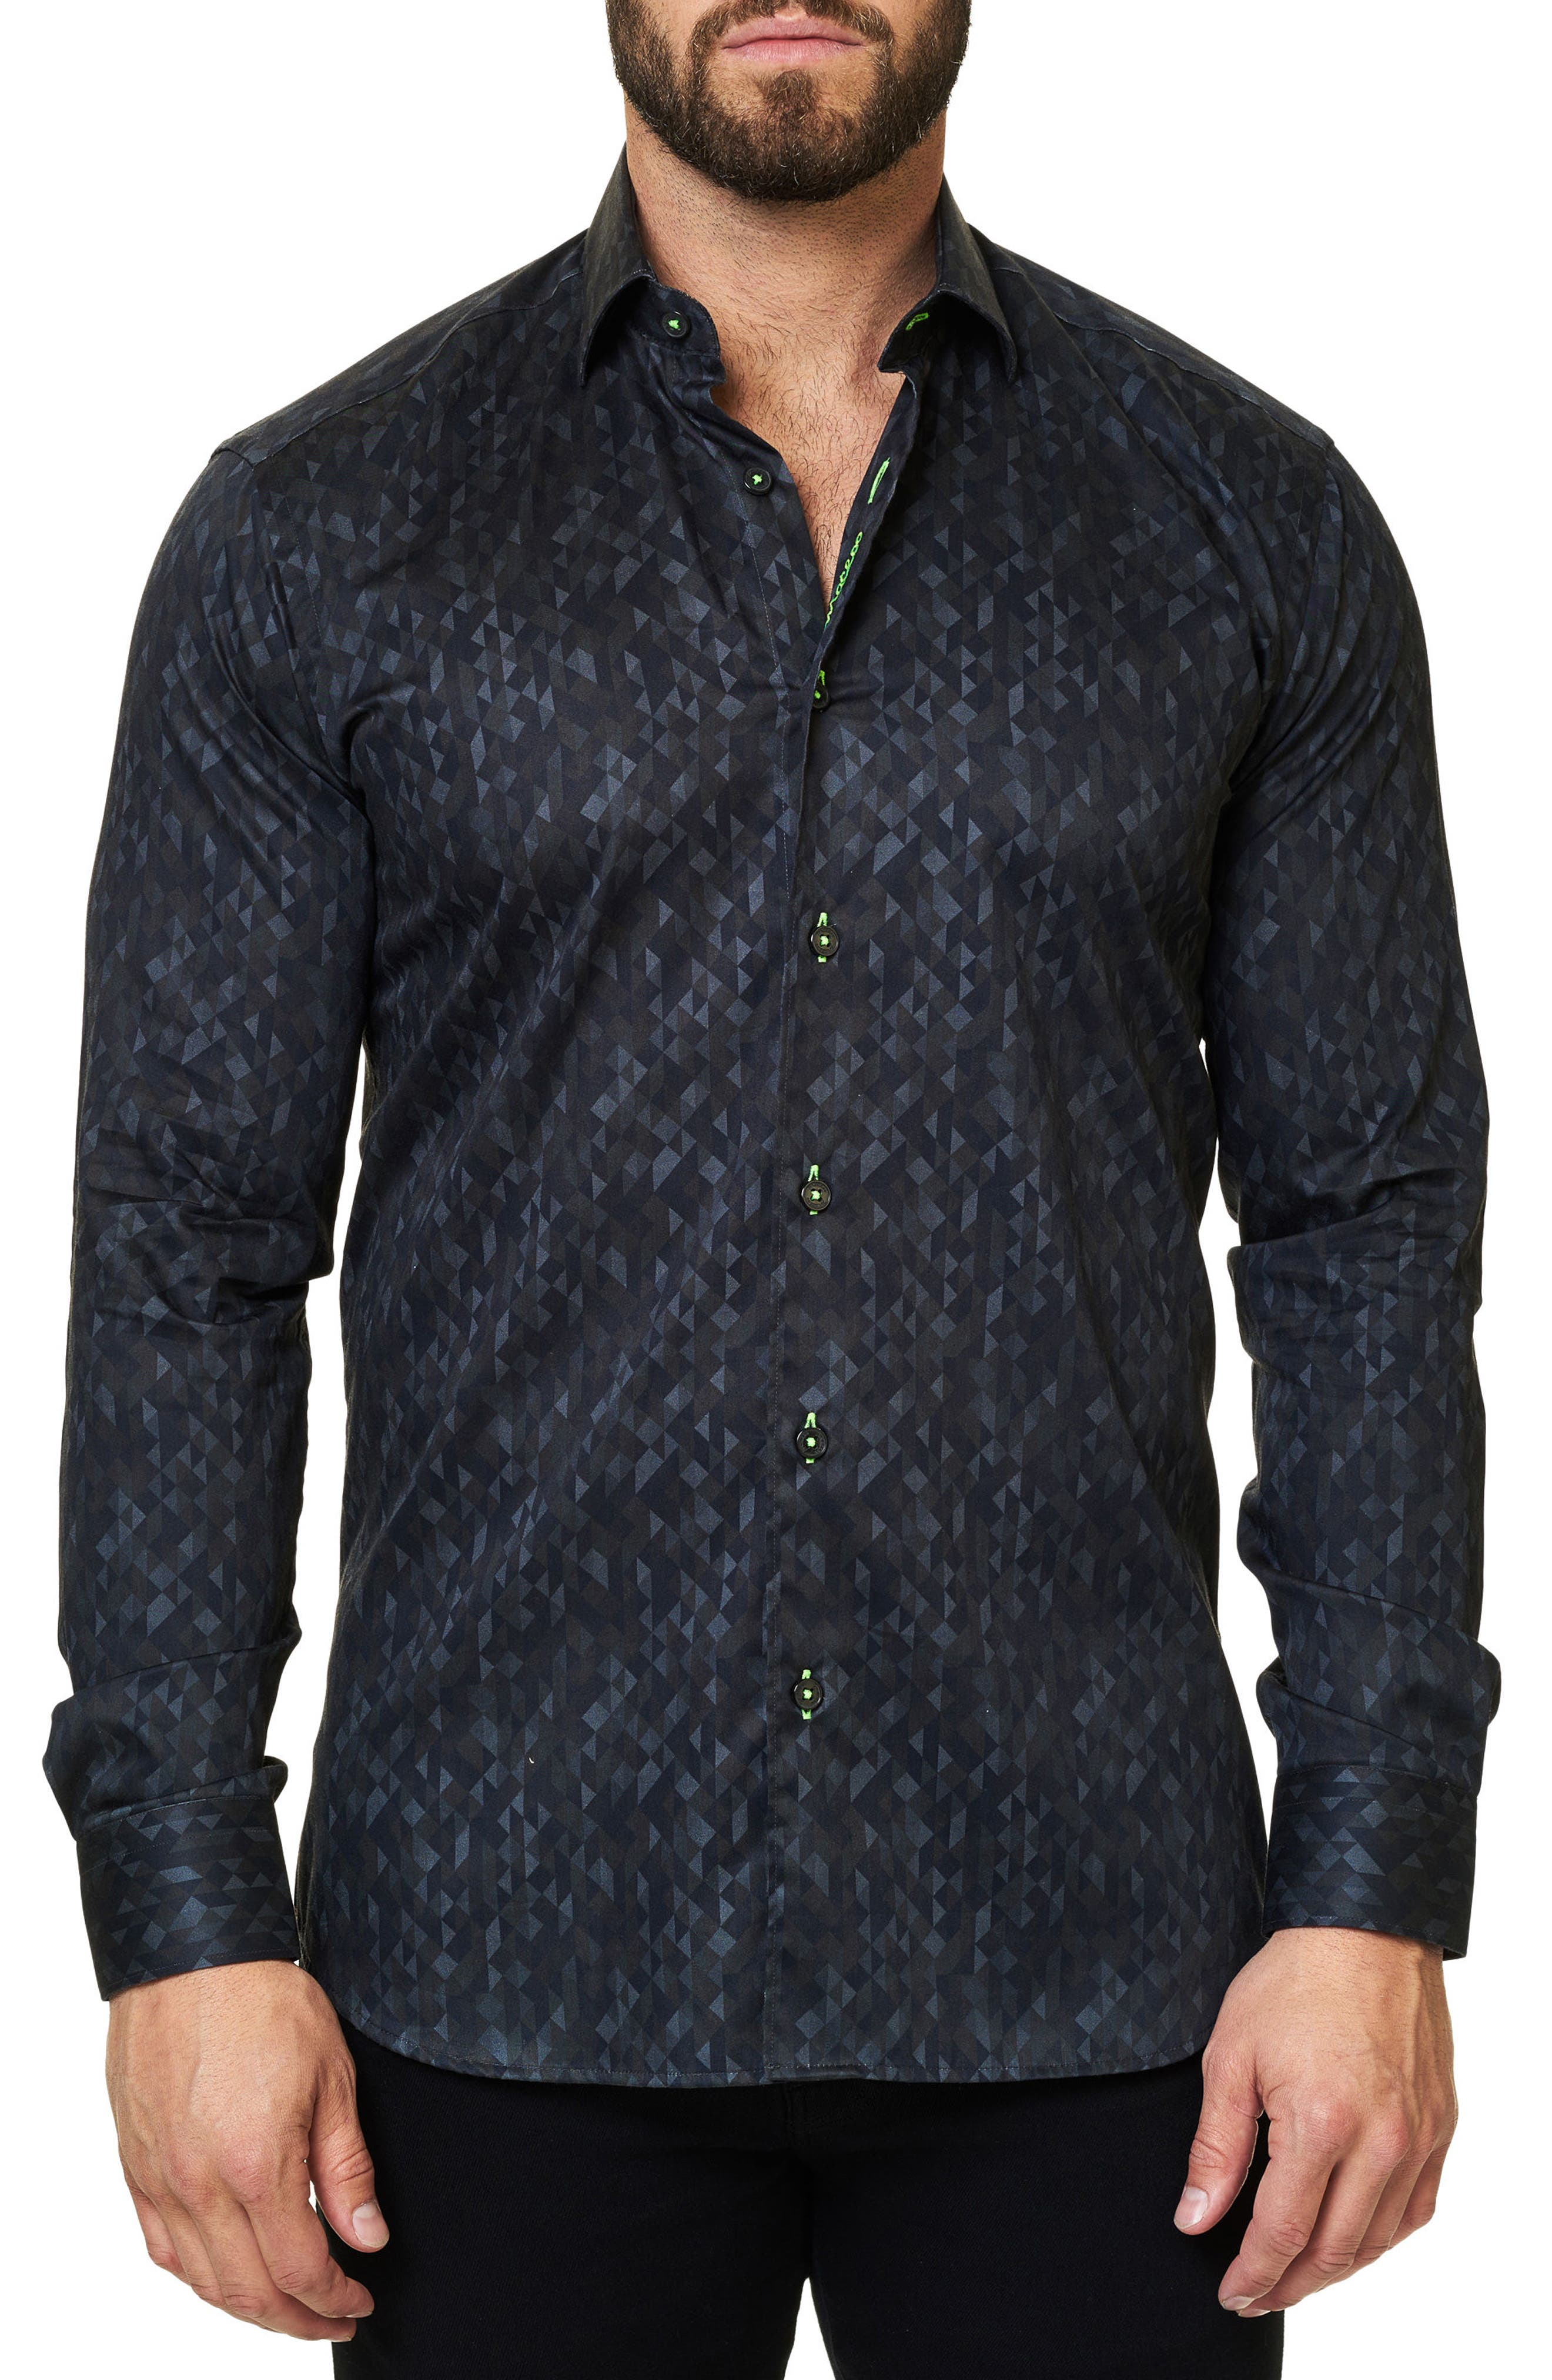 Maceoo Luxor Abstract Losange Trim Fit Sport Shirt